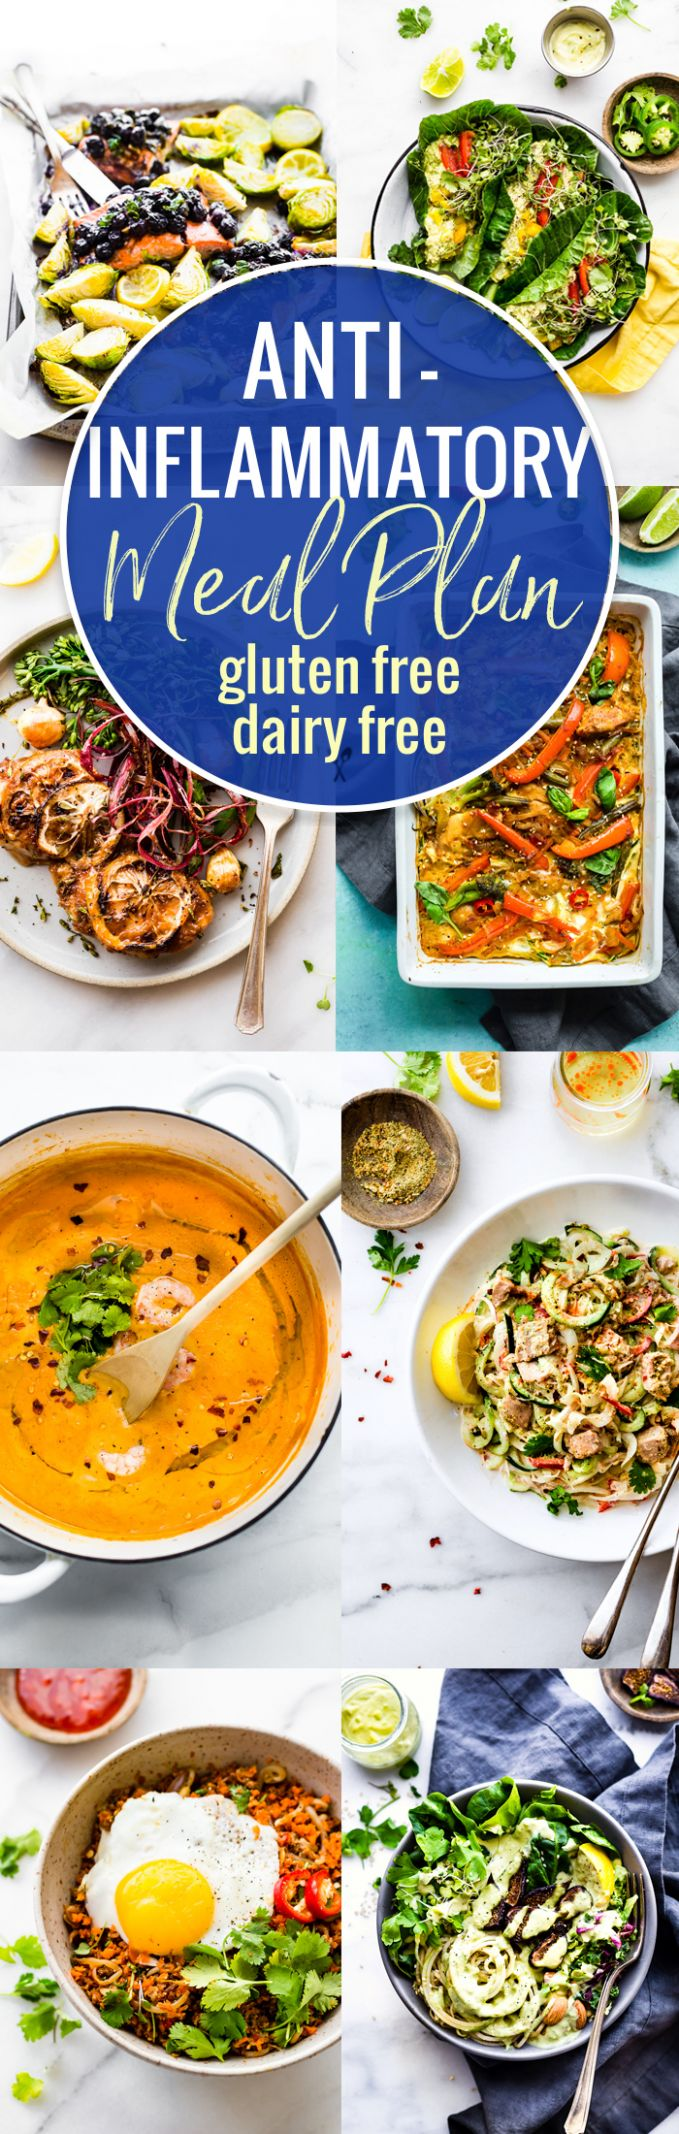 Anti-Inflammatory Meal Plan of Dairy-Free and Gluten-Free Recipes - Healthy Recipes No Dairy